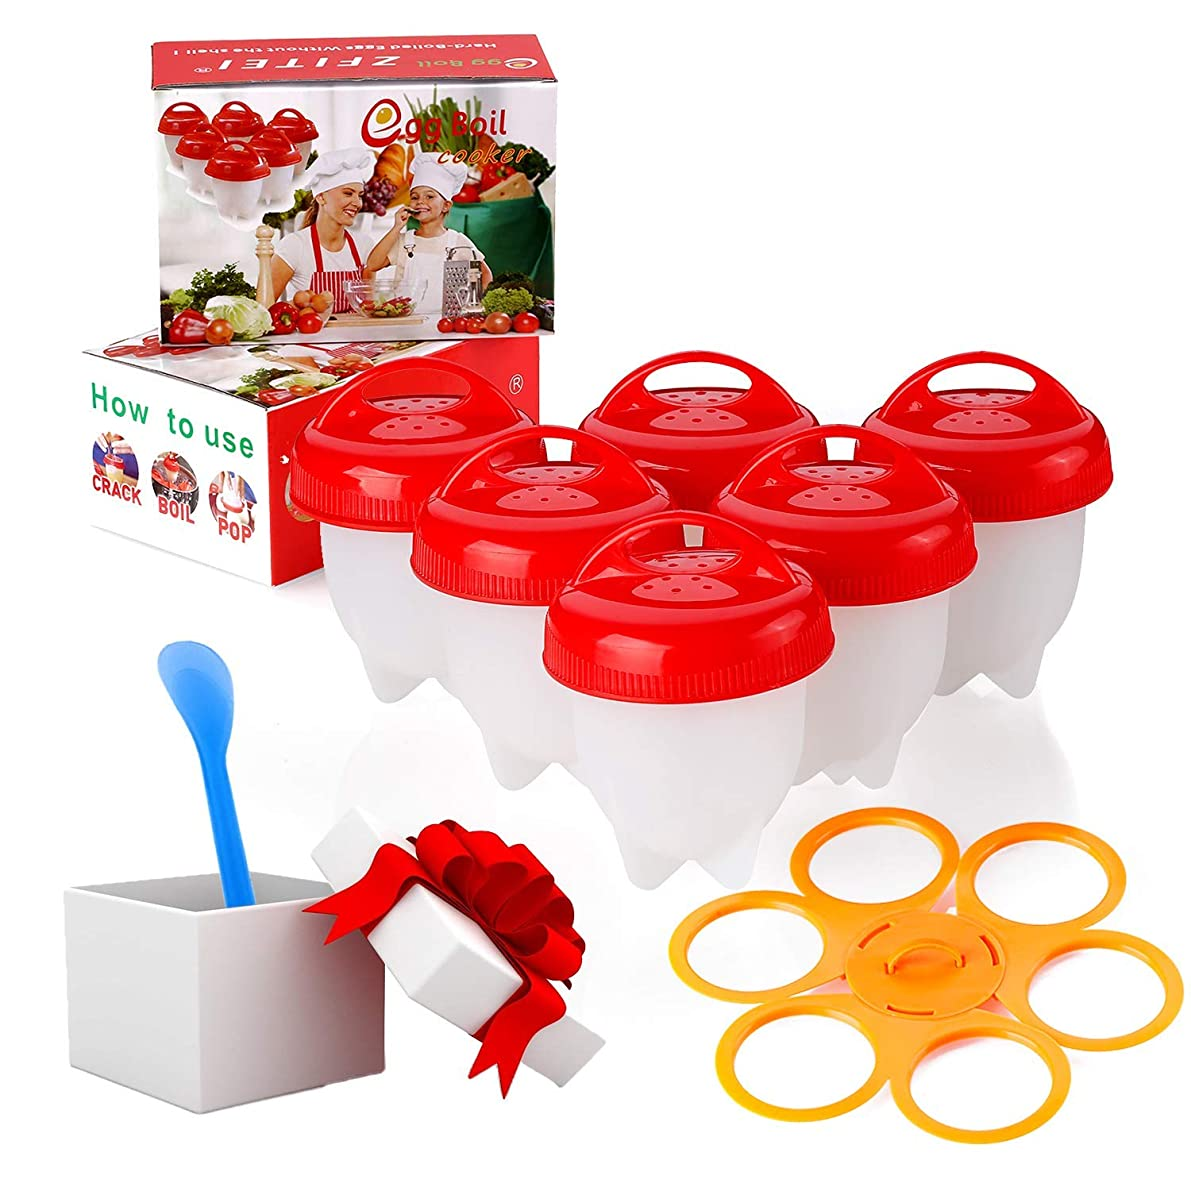 Egg Poacher, 6 pcs and Prevent rollover egg cooker holder, Boiled Eggs No shell,hard&Soft Maker, BPA Free,Non Stick Silicone, the holder compatible with most of the same type of products, by ZFITEI.